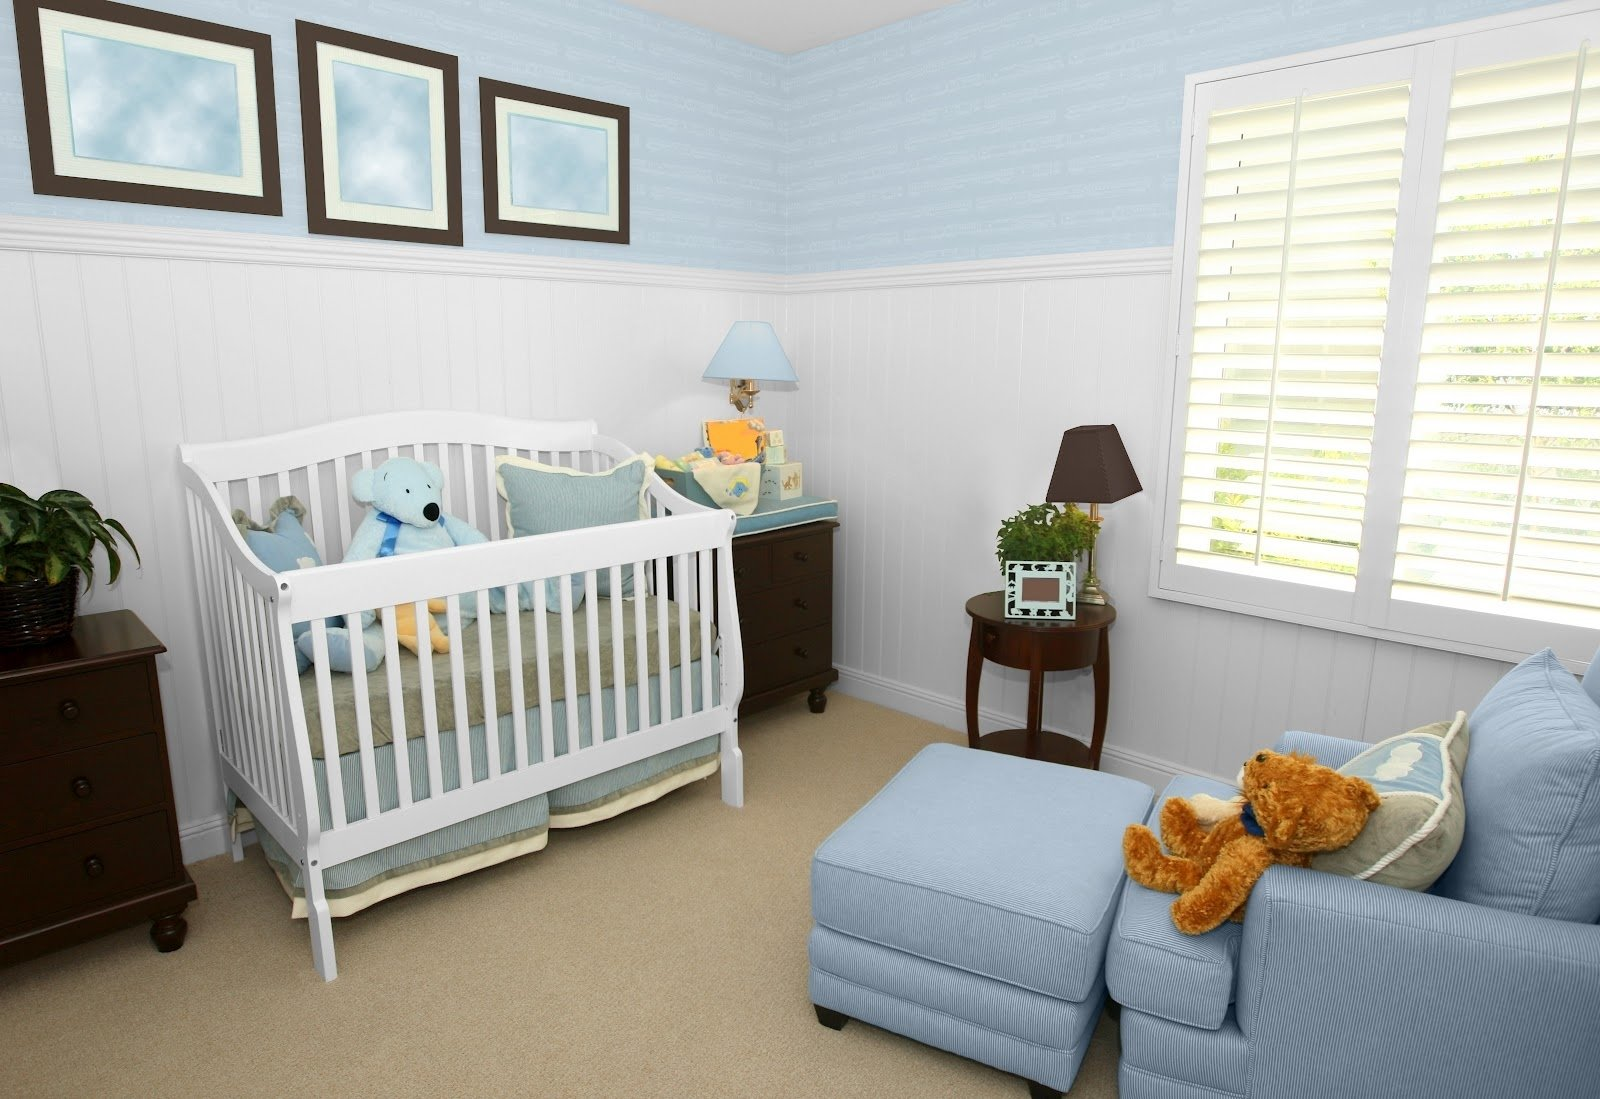 10 Trendy Baby Boy Paint Ideas For Room 51 baby boy room colors baby nursery decorative wall painting 2020